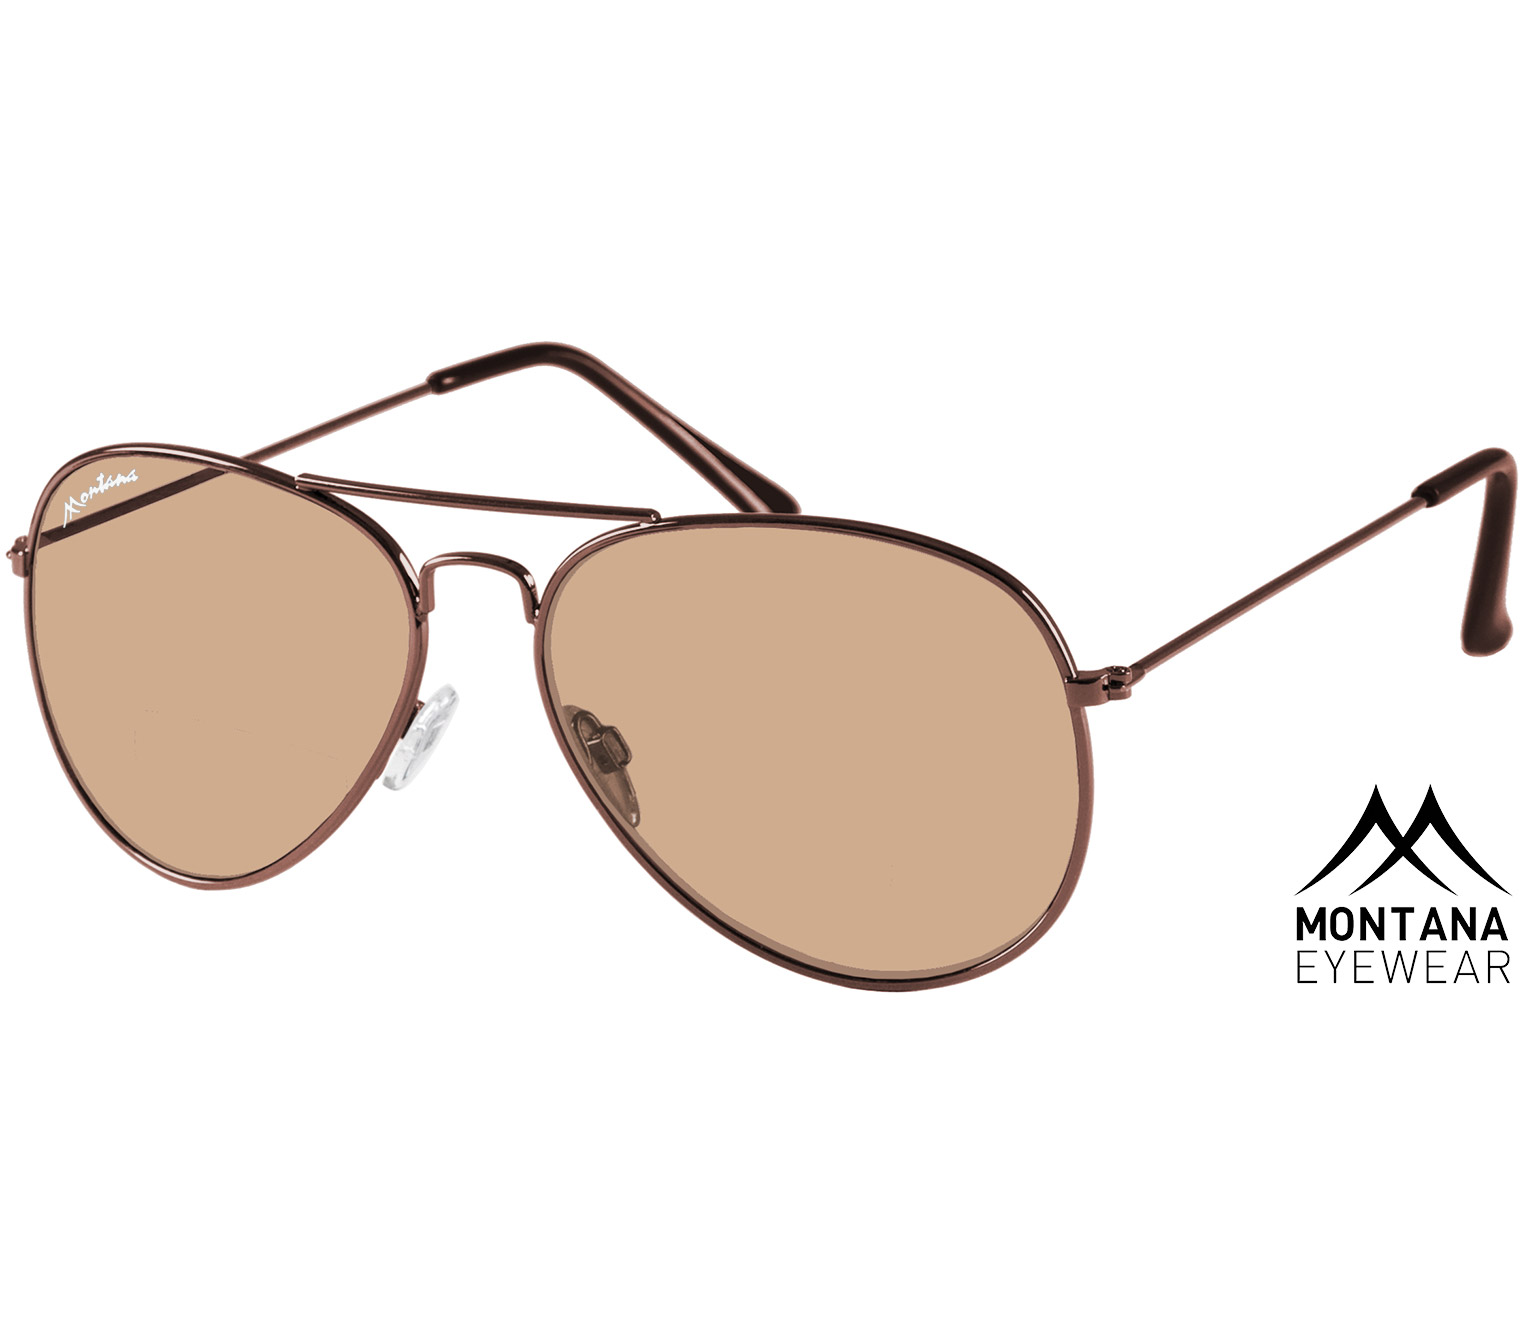 Main Image (Angle) - Fiji (Brown) Aviator Sunglasses